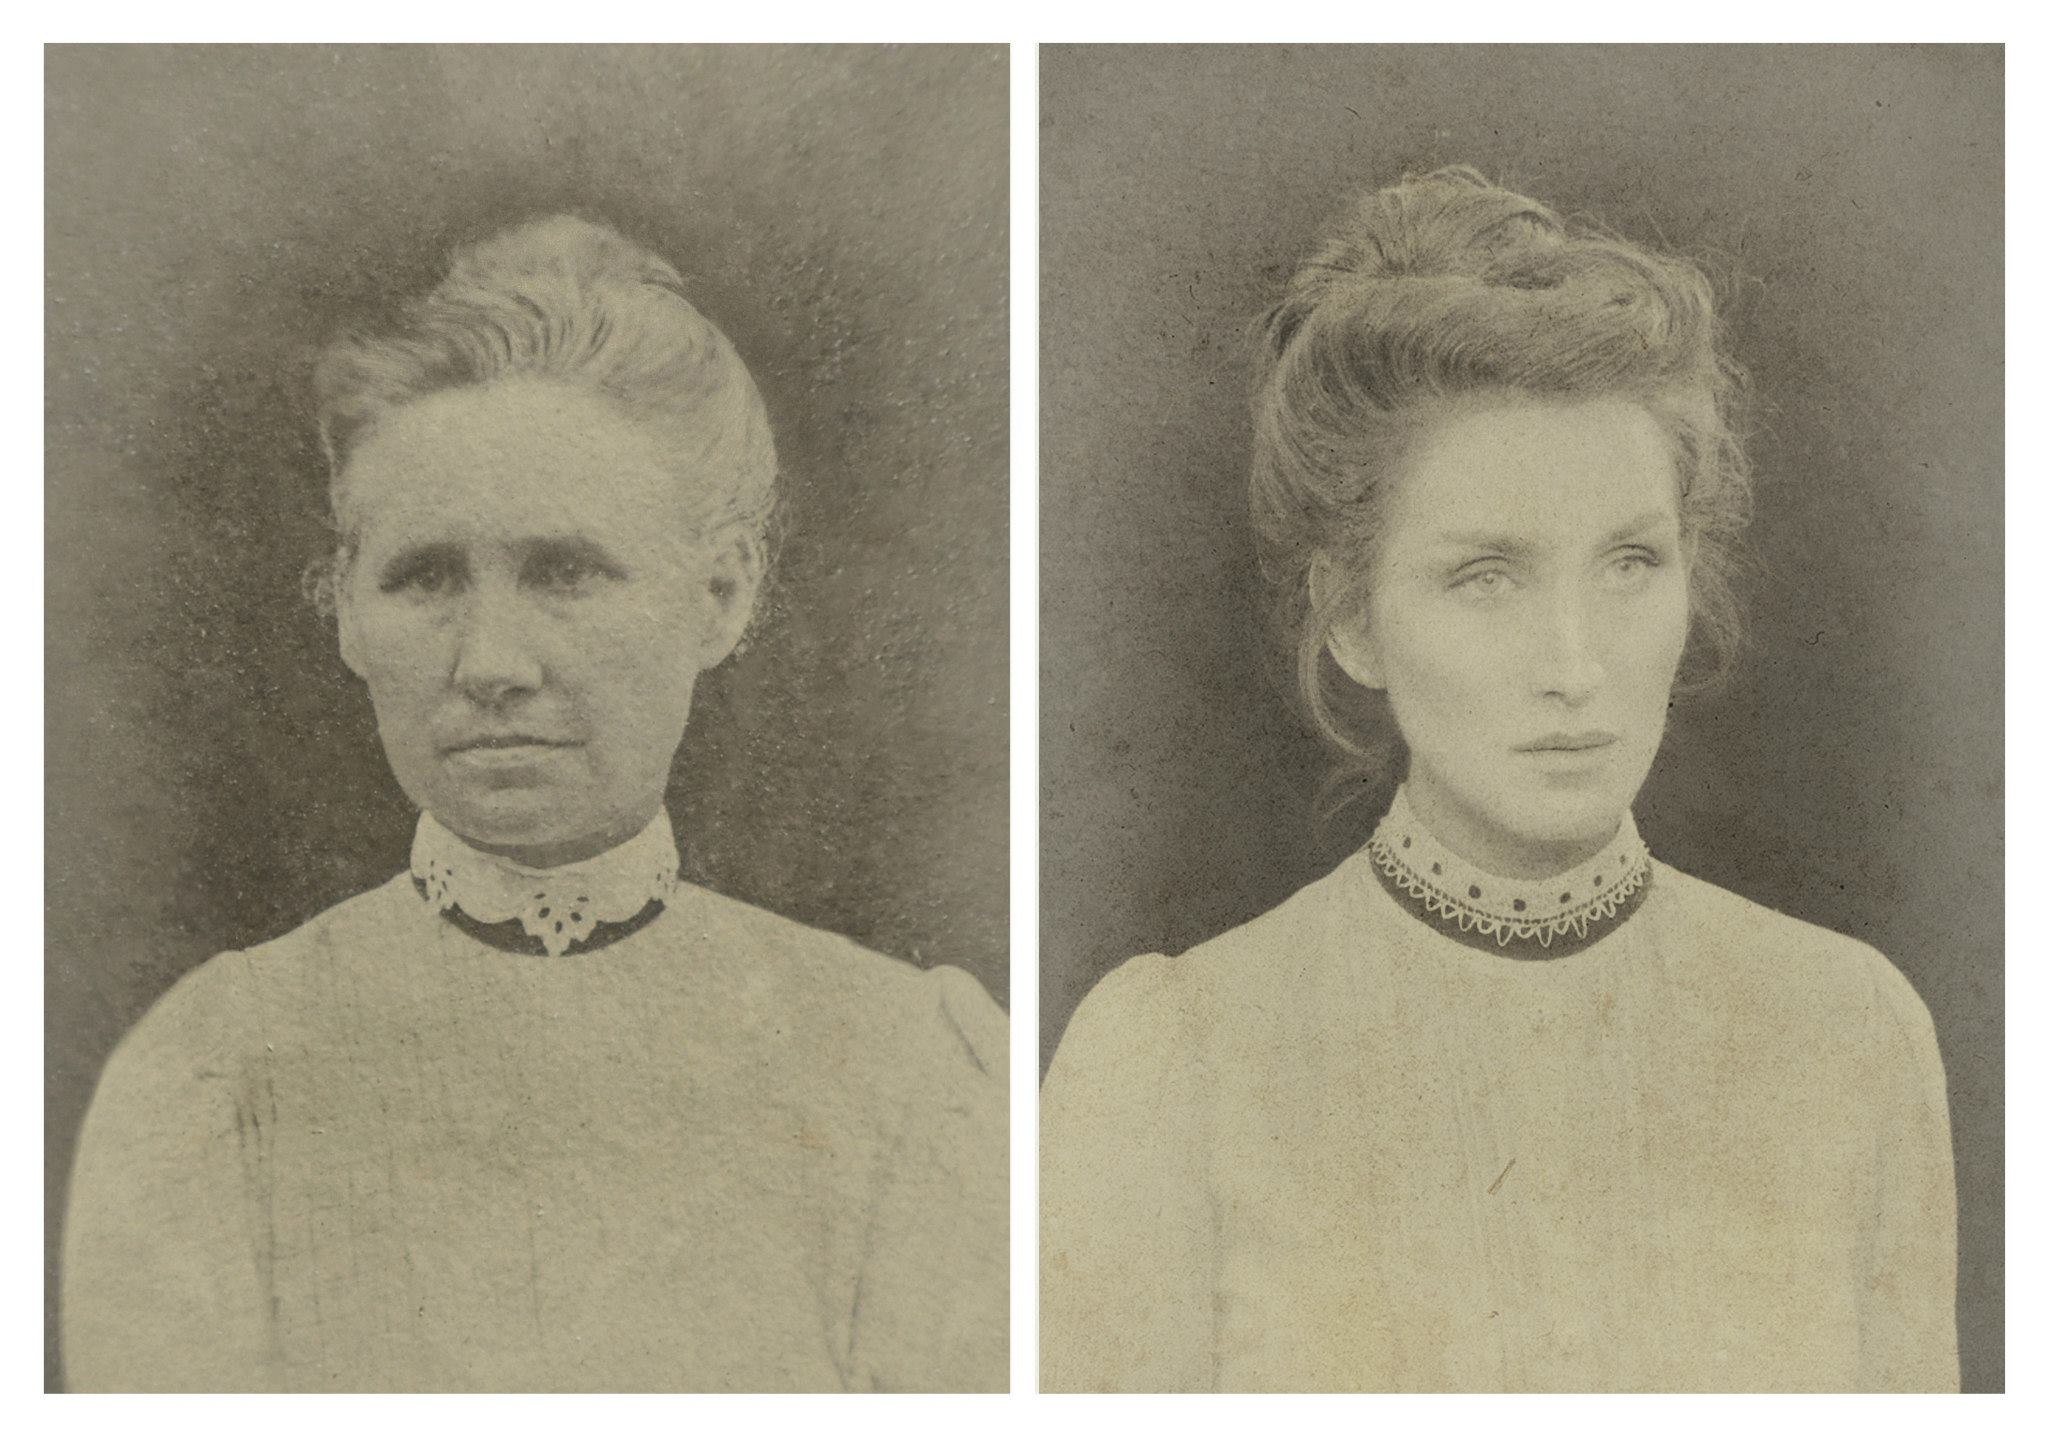 Christine's great-great-grandmother Jane, born 1858